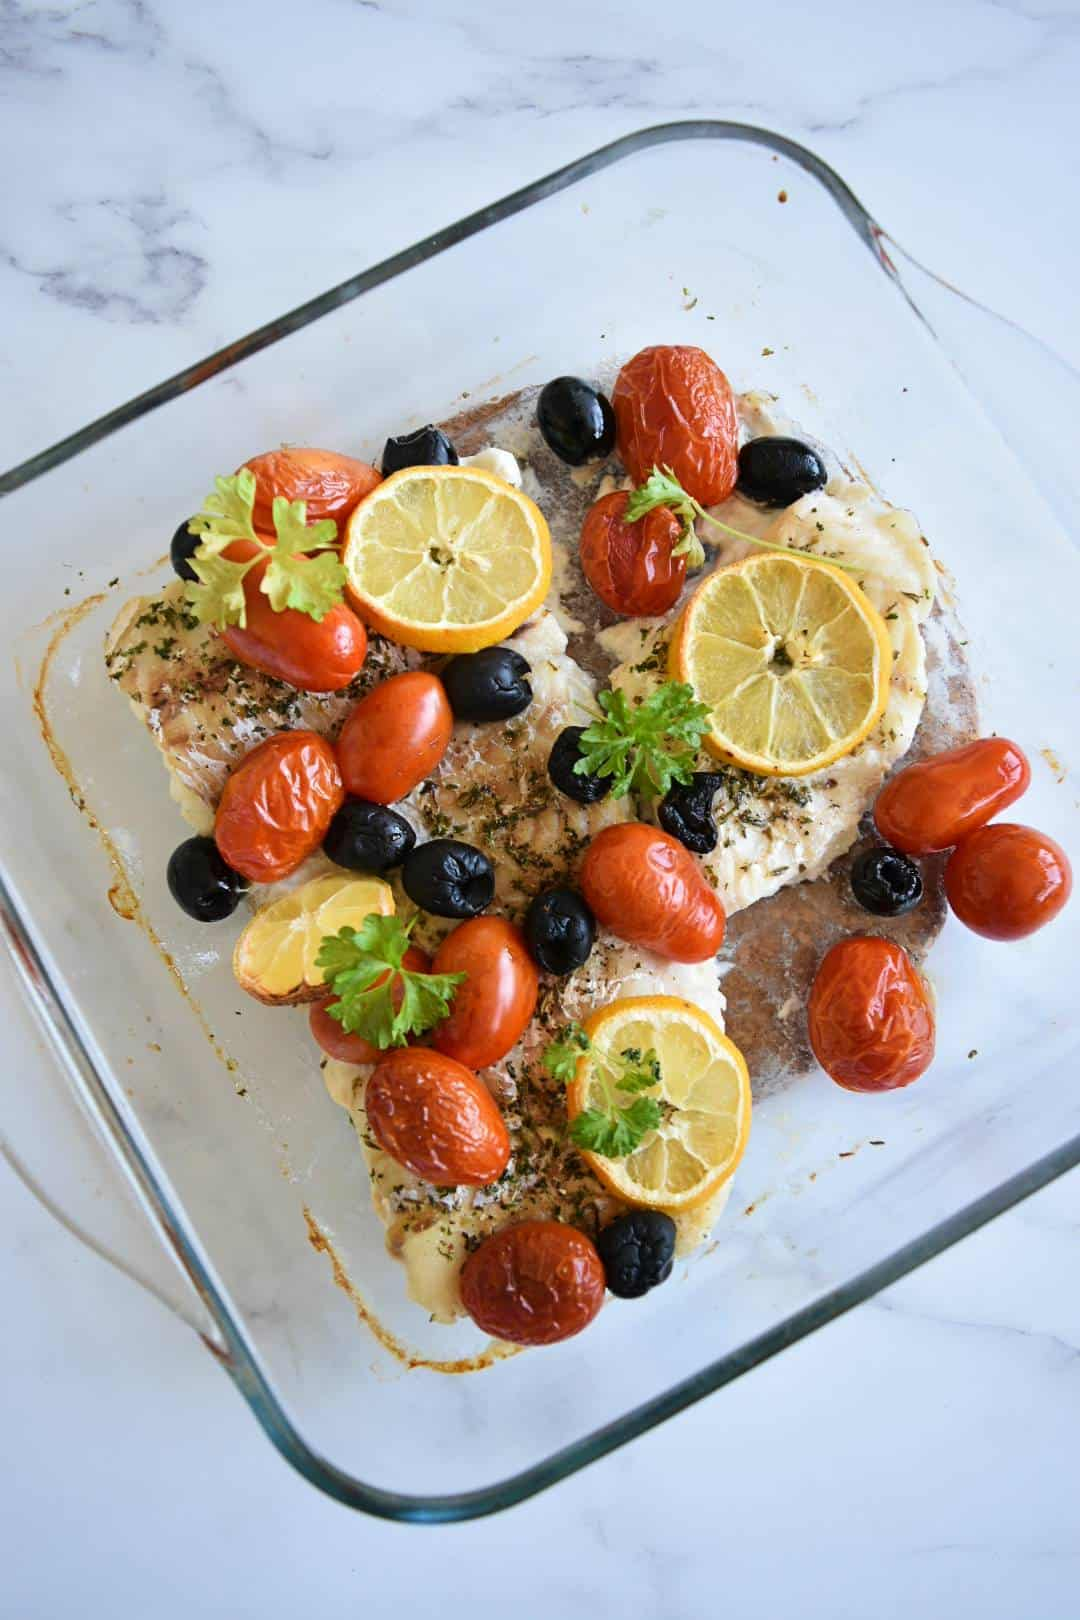 Tomatoes, olives and cod bake with fresh herbs and lemon sliced on top.